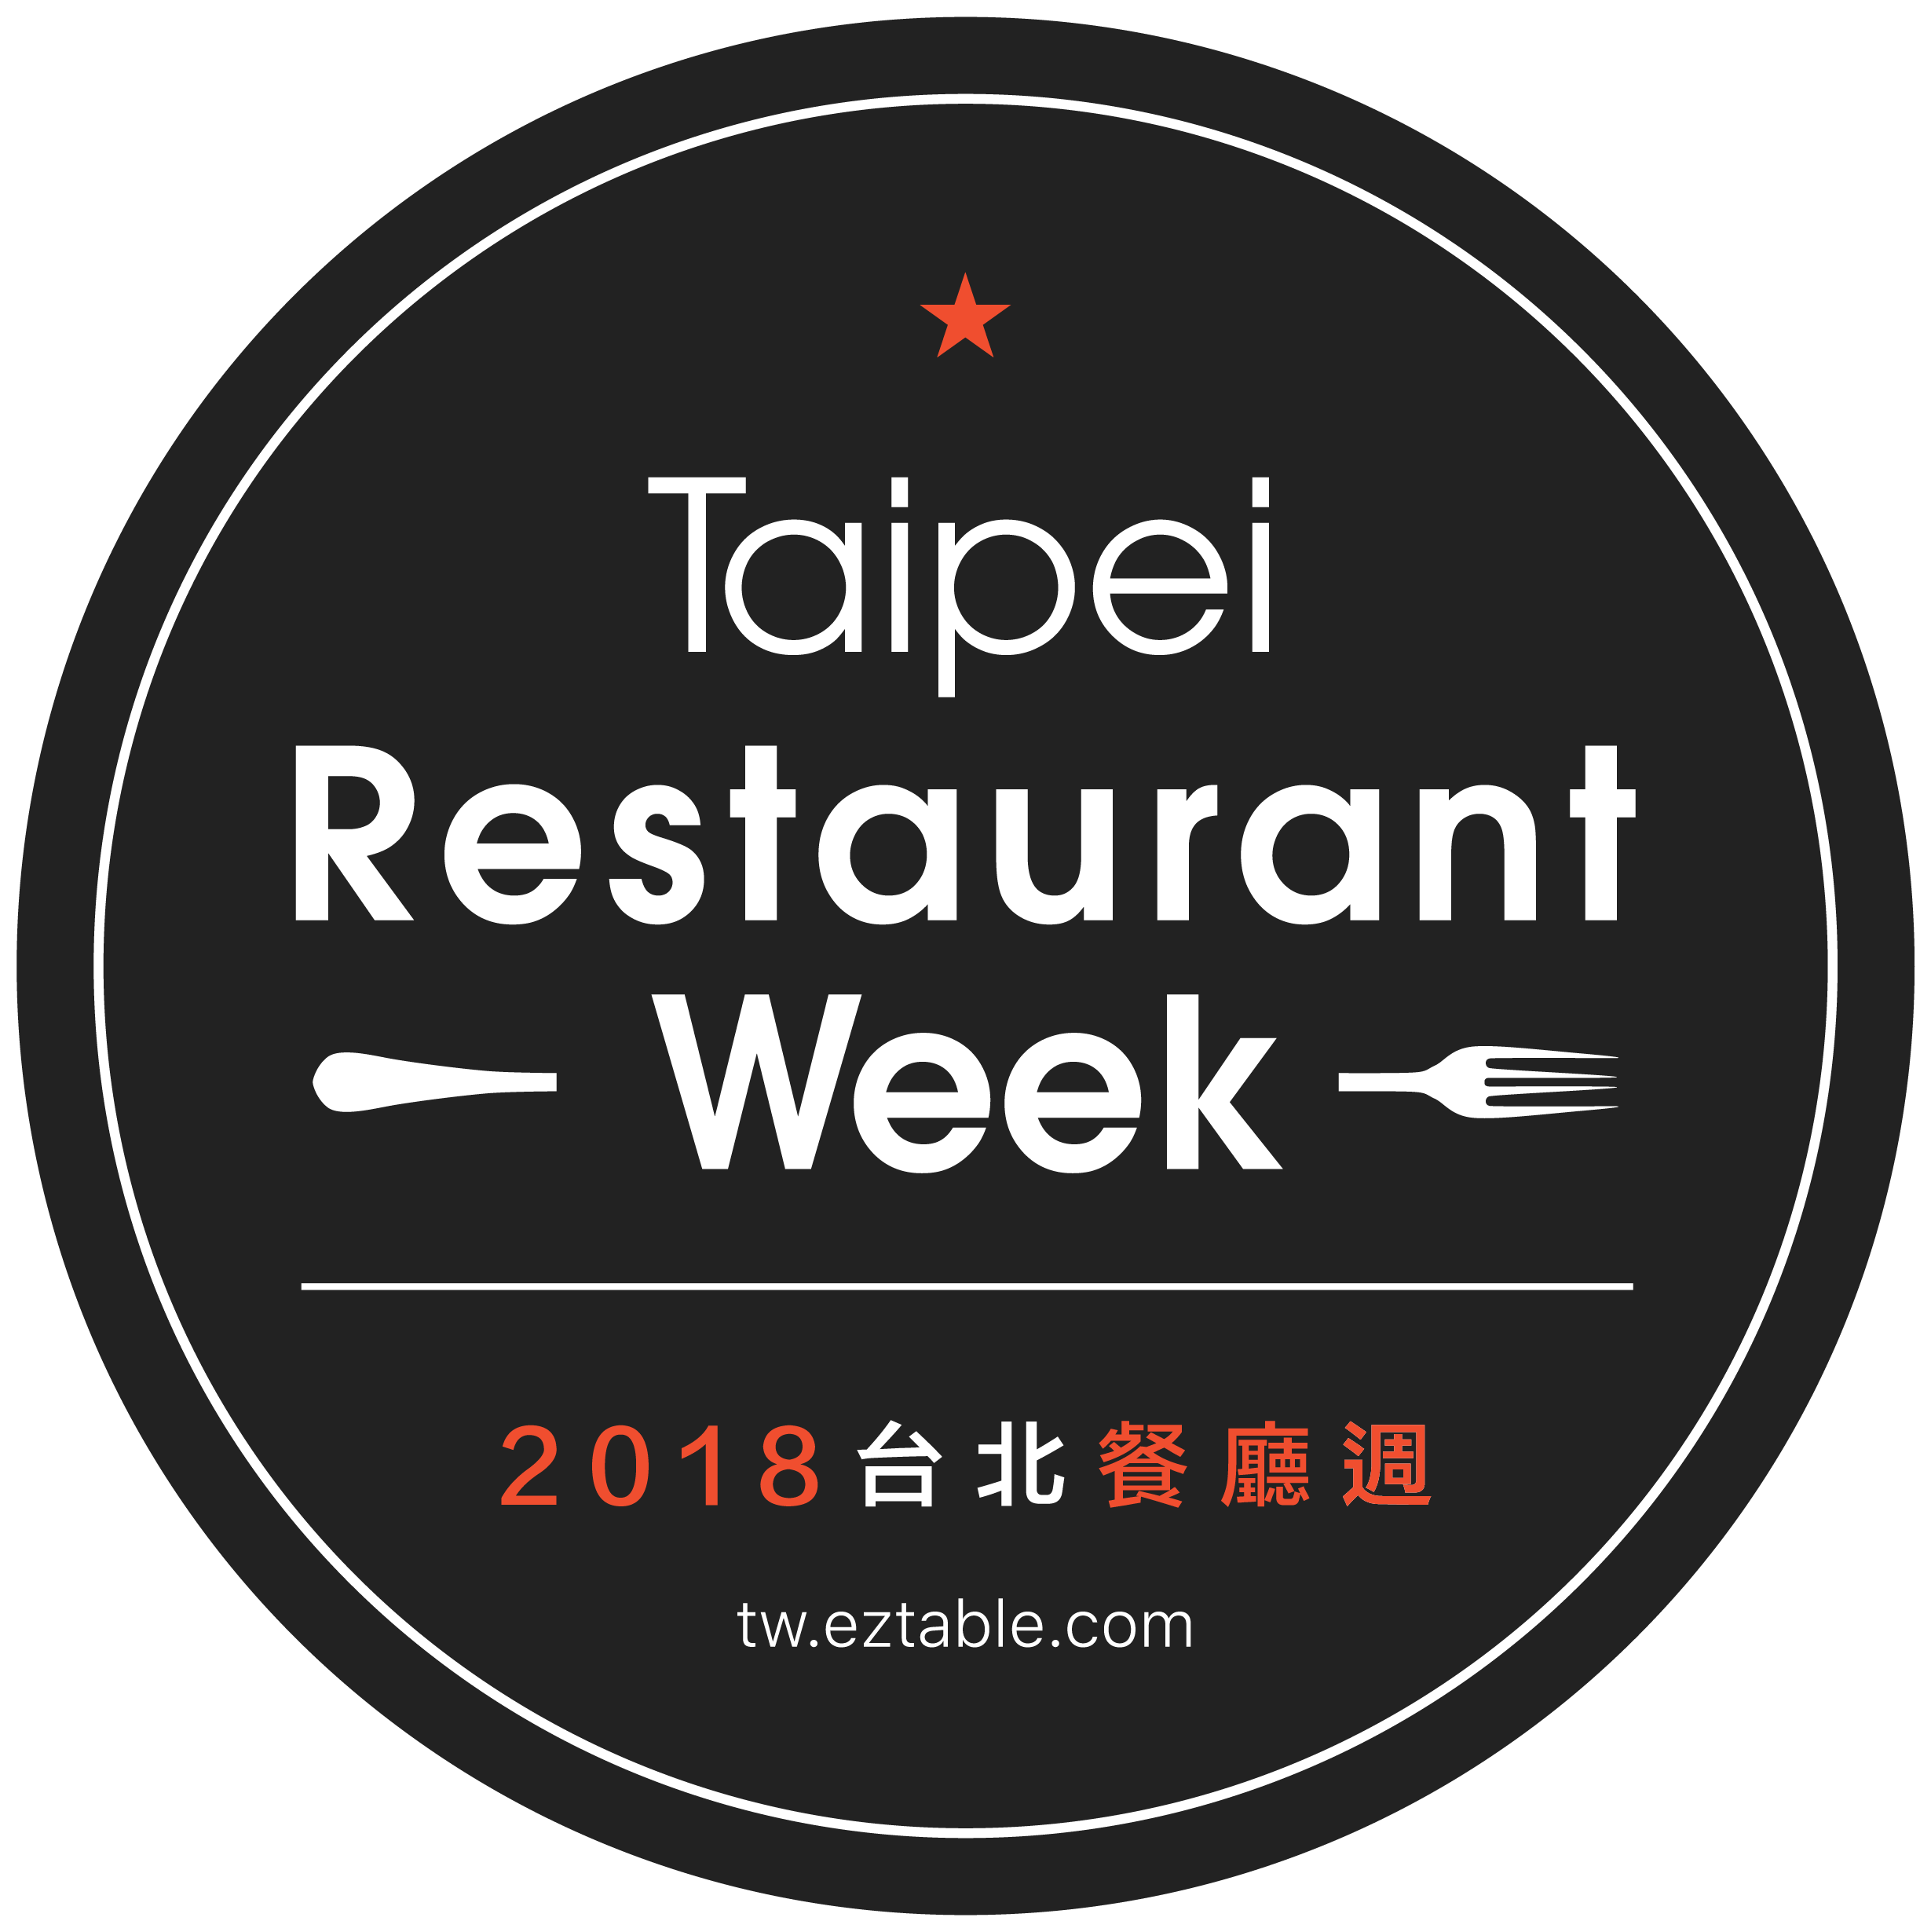 2018 台北餐廳週 Taipei Restaurant Week